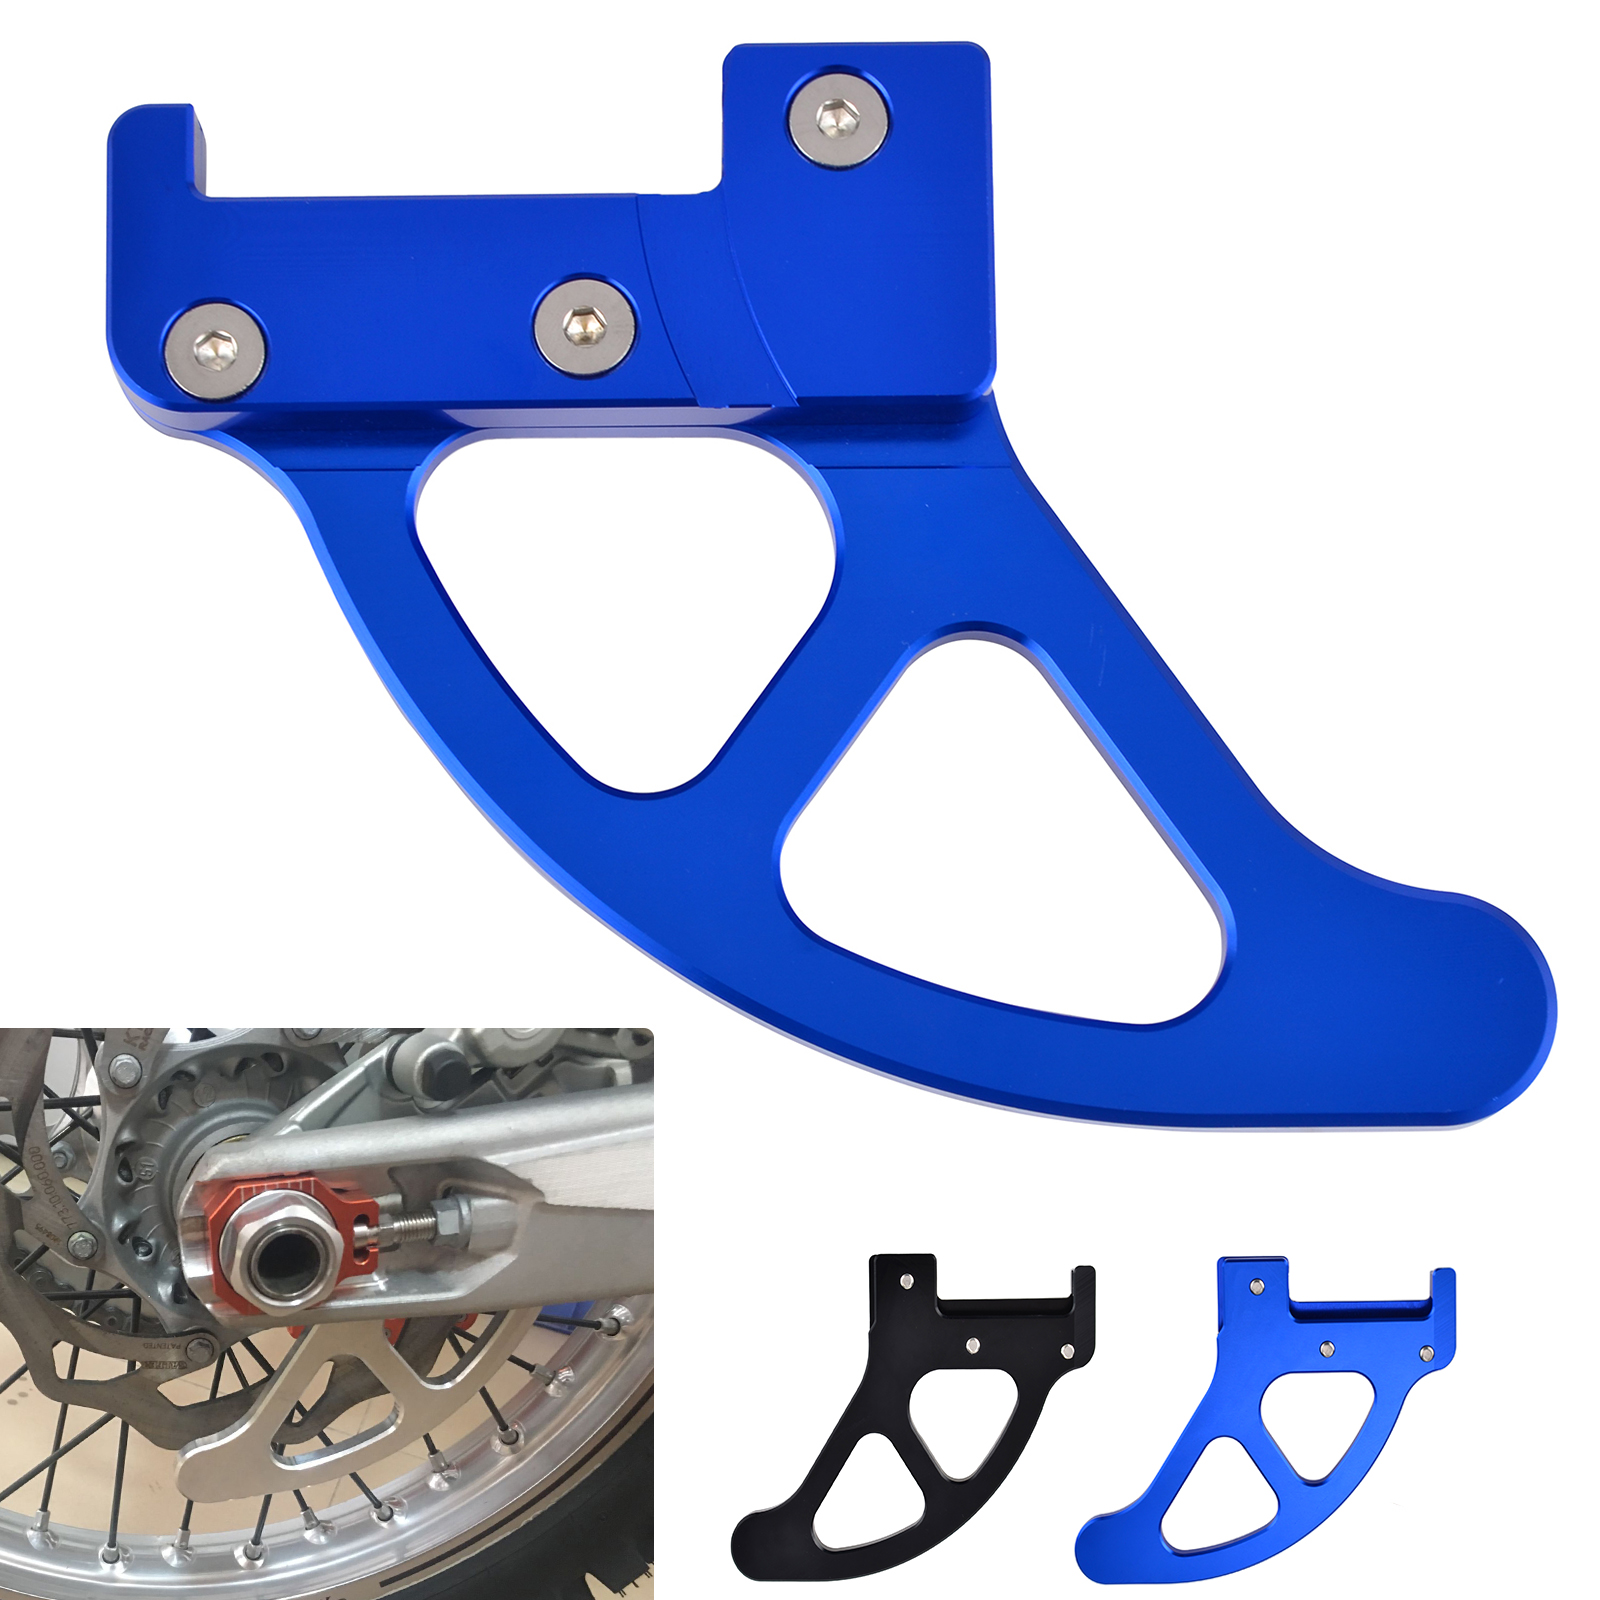 CNC Rear Brake Disc Cover Guard For Husqvarna TC FC TE FE 200 250 350 450 501 2014 2017 Husaberg 250 570 2009 2014 in Covers Ornamental Mouldings from Automobiles Motorcycles